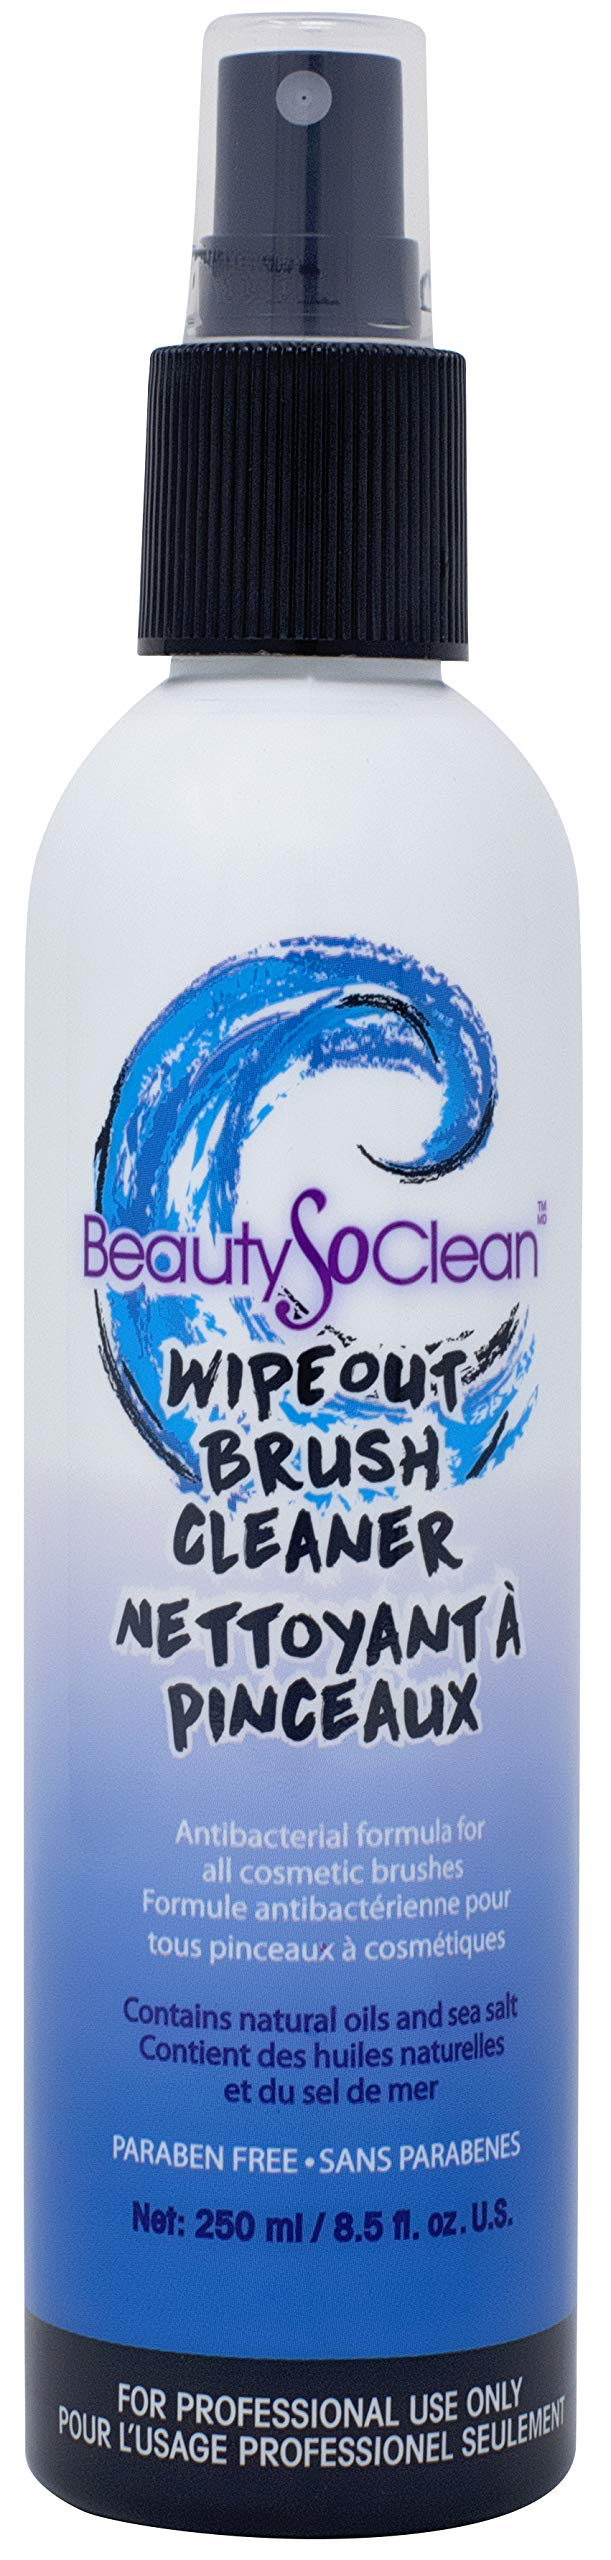 Beautysoclean Wipeout Makeup Brush Cleaner - Cosmetic Brush Cleaning Spray, Disinfectant, Sanitizer (8.5OZ) Cruelty Free, Vegan, Paraben Free, Natural & Synthetic Makeup Brush Cleanser